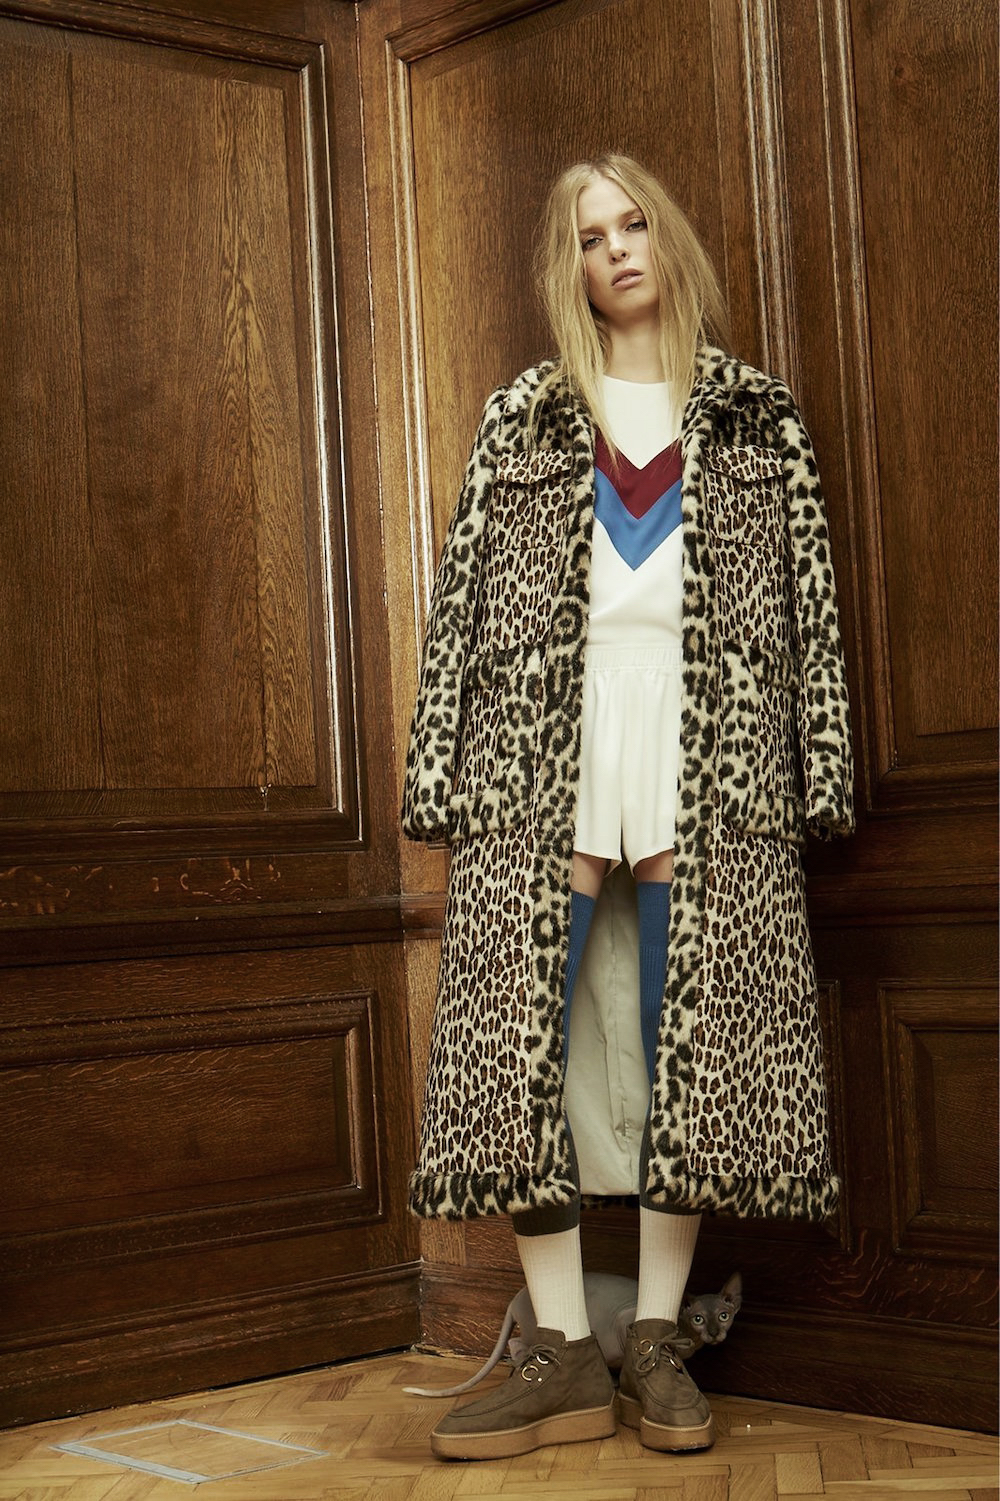 stella mccartney, pre fall 2016, lookbook, leopard, trend, oracle fox